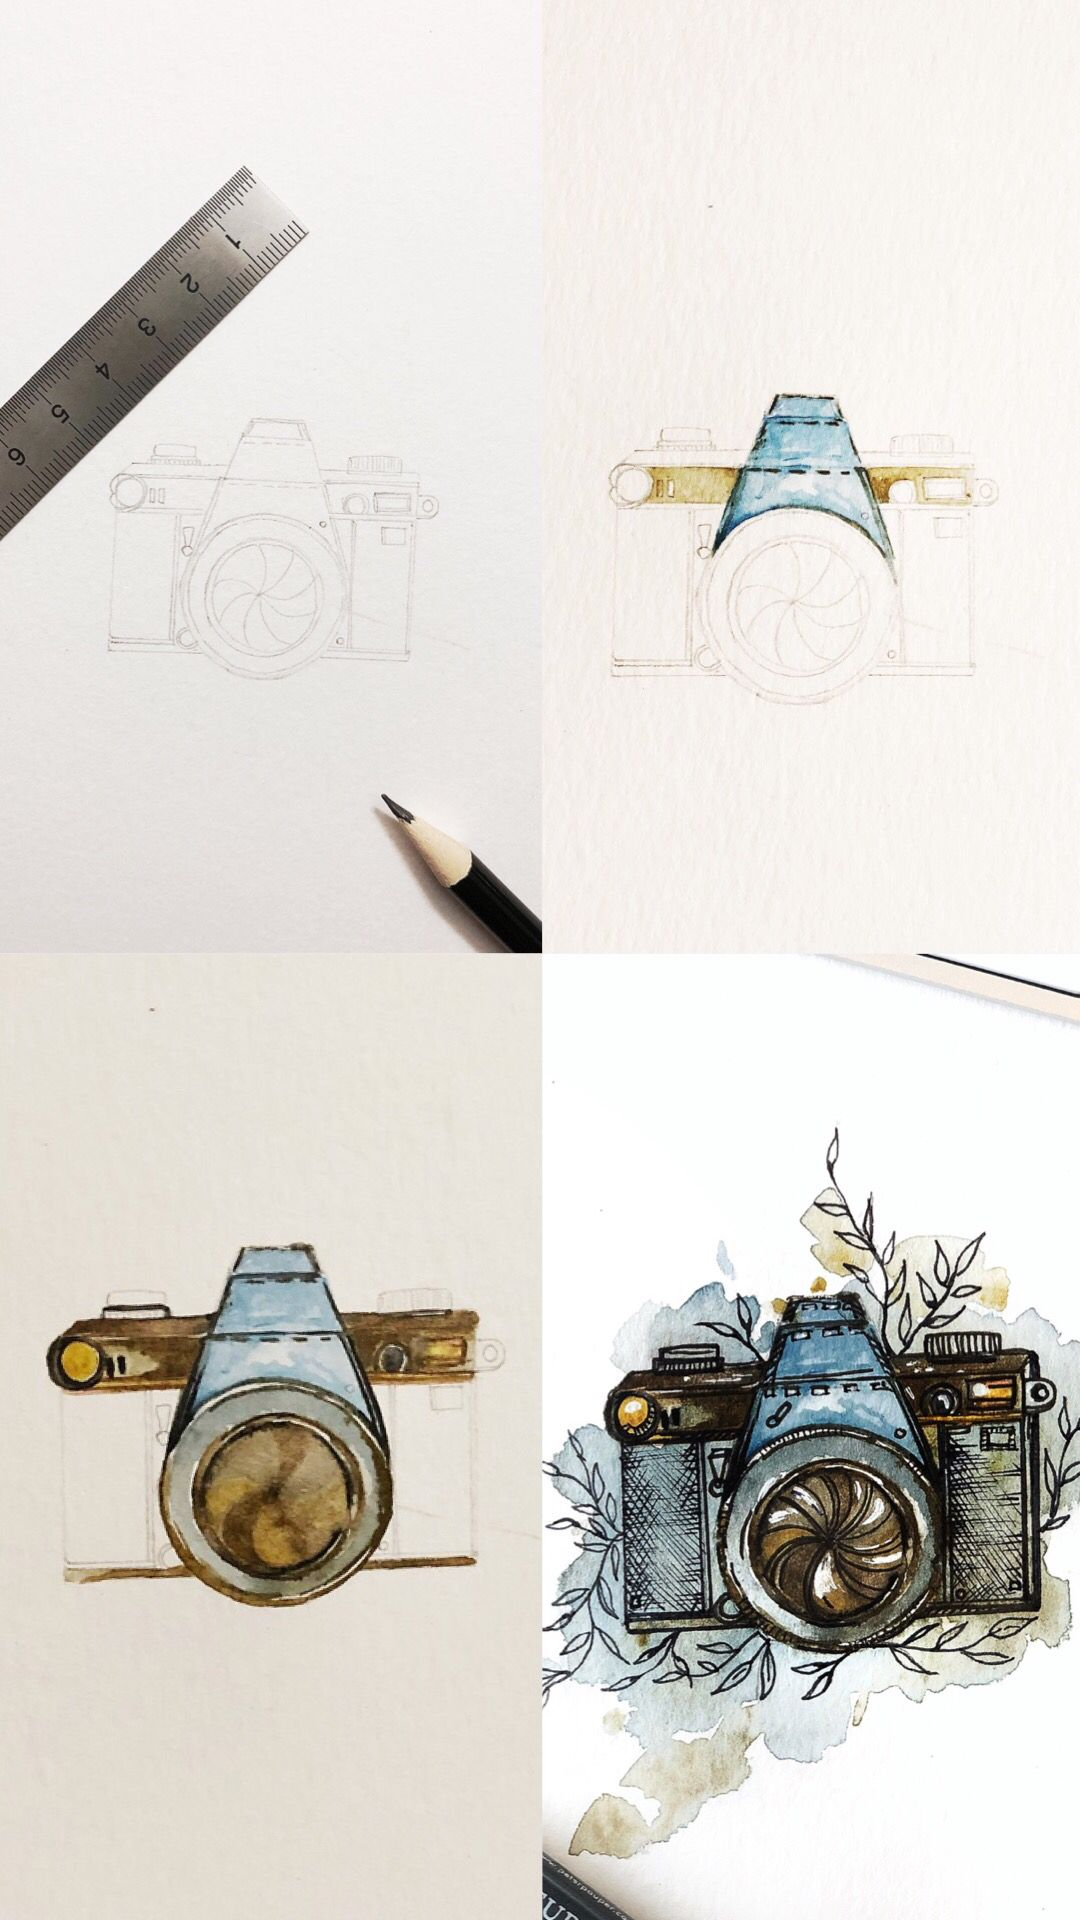 Mini watercolor and micron pen camera sketch tutorial with step by step process photos.   #tutorial #sketchbook #drawingtutorial #drawingtips #sketching #artteacher #artteachersofinstagram #arttutorials #arttechniques #doodleart #doodles  #camera